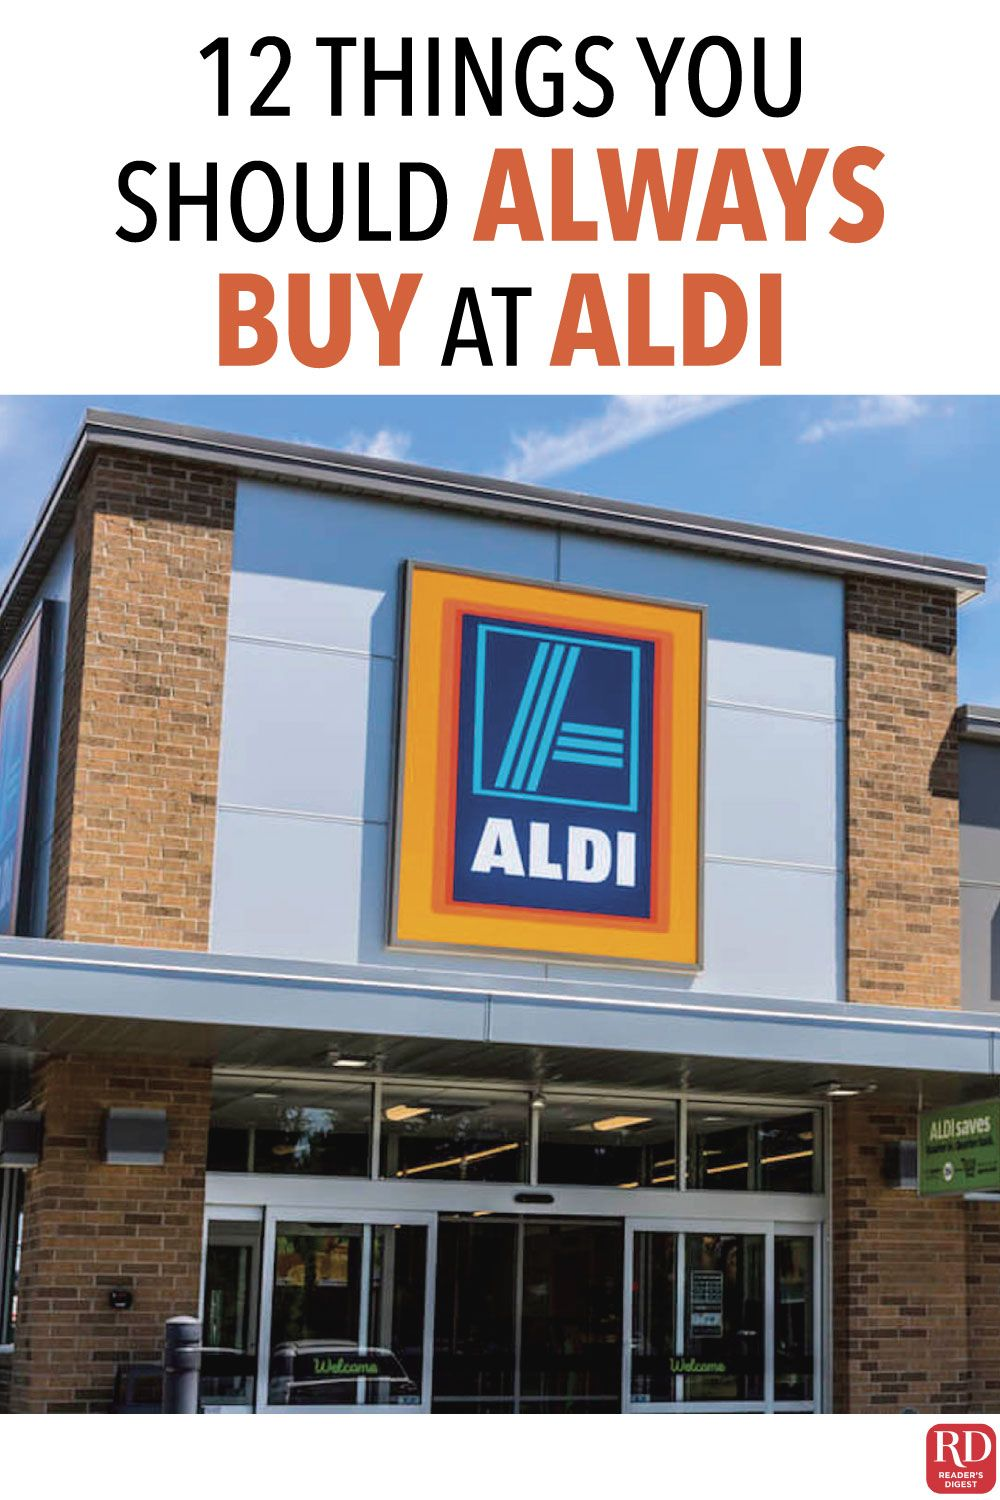 12 Things You Should Always Buy at Aldi in 2020 (With